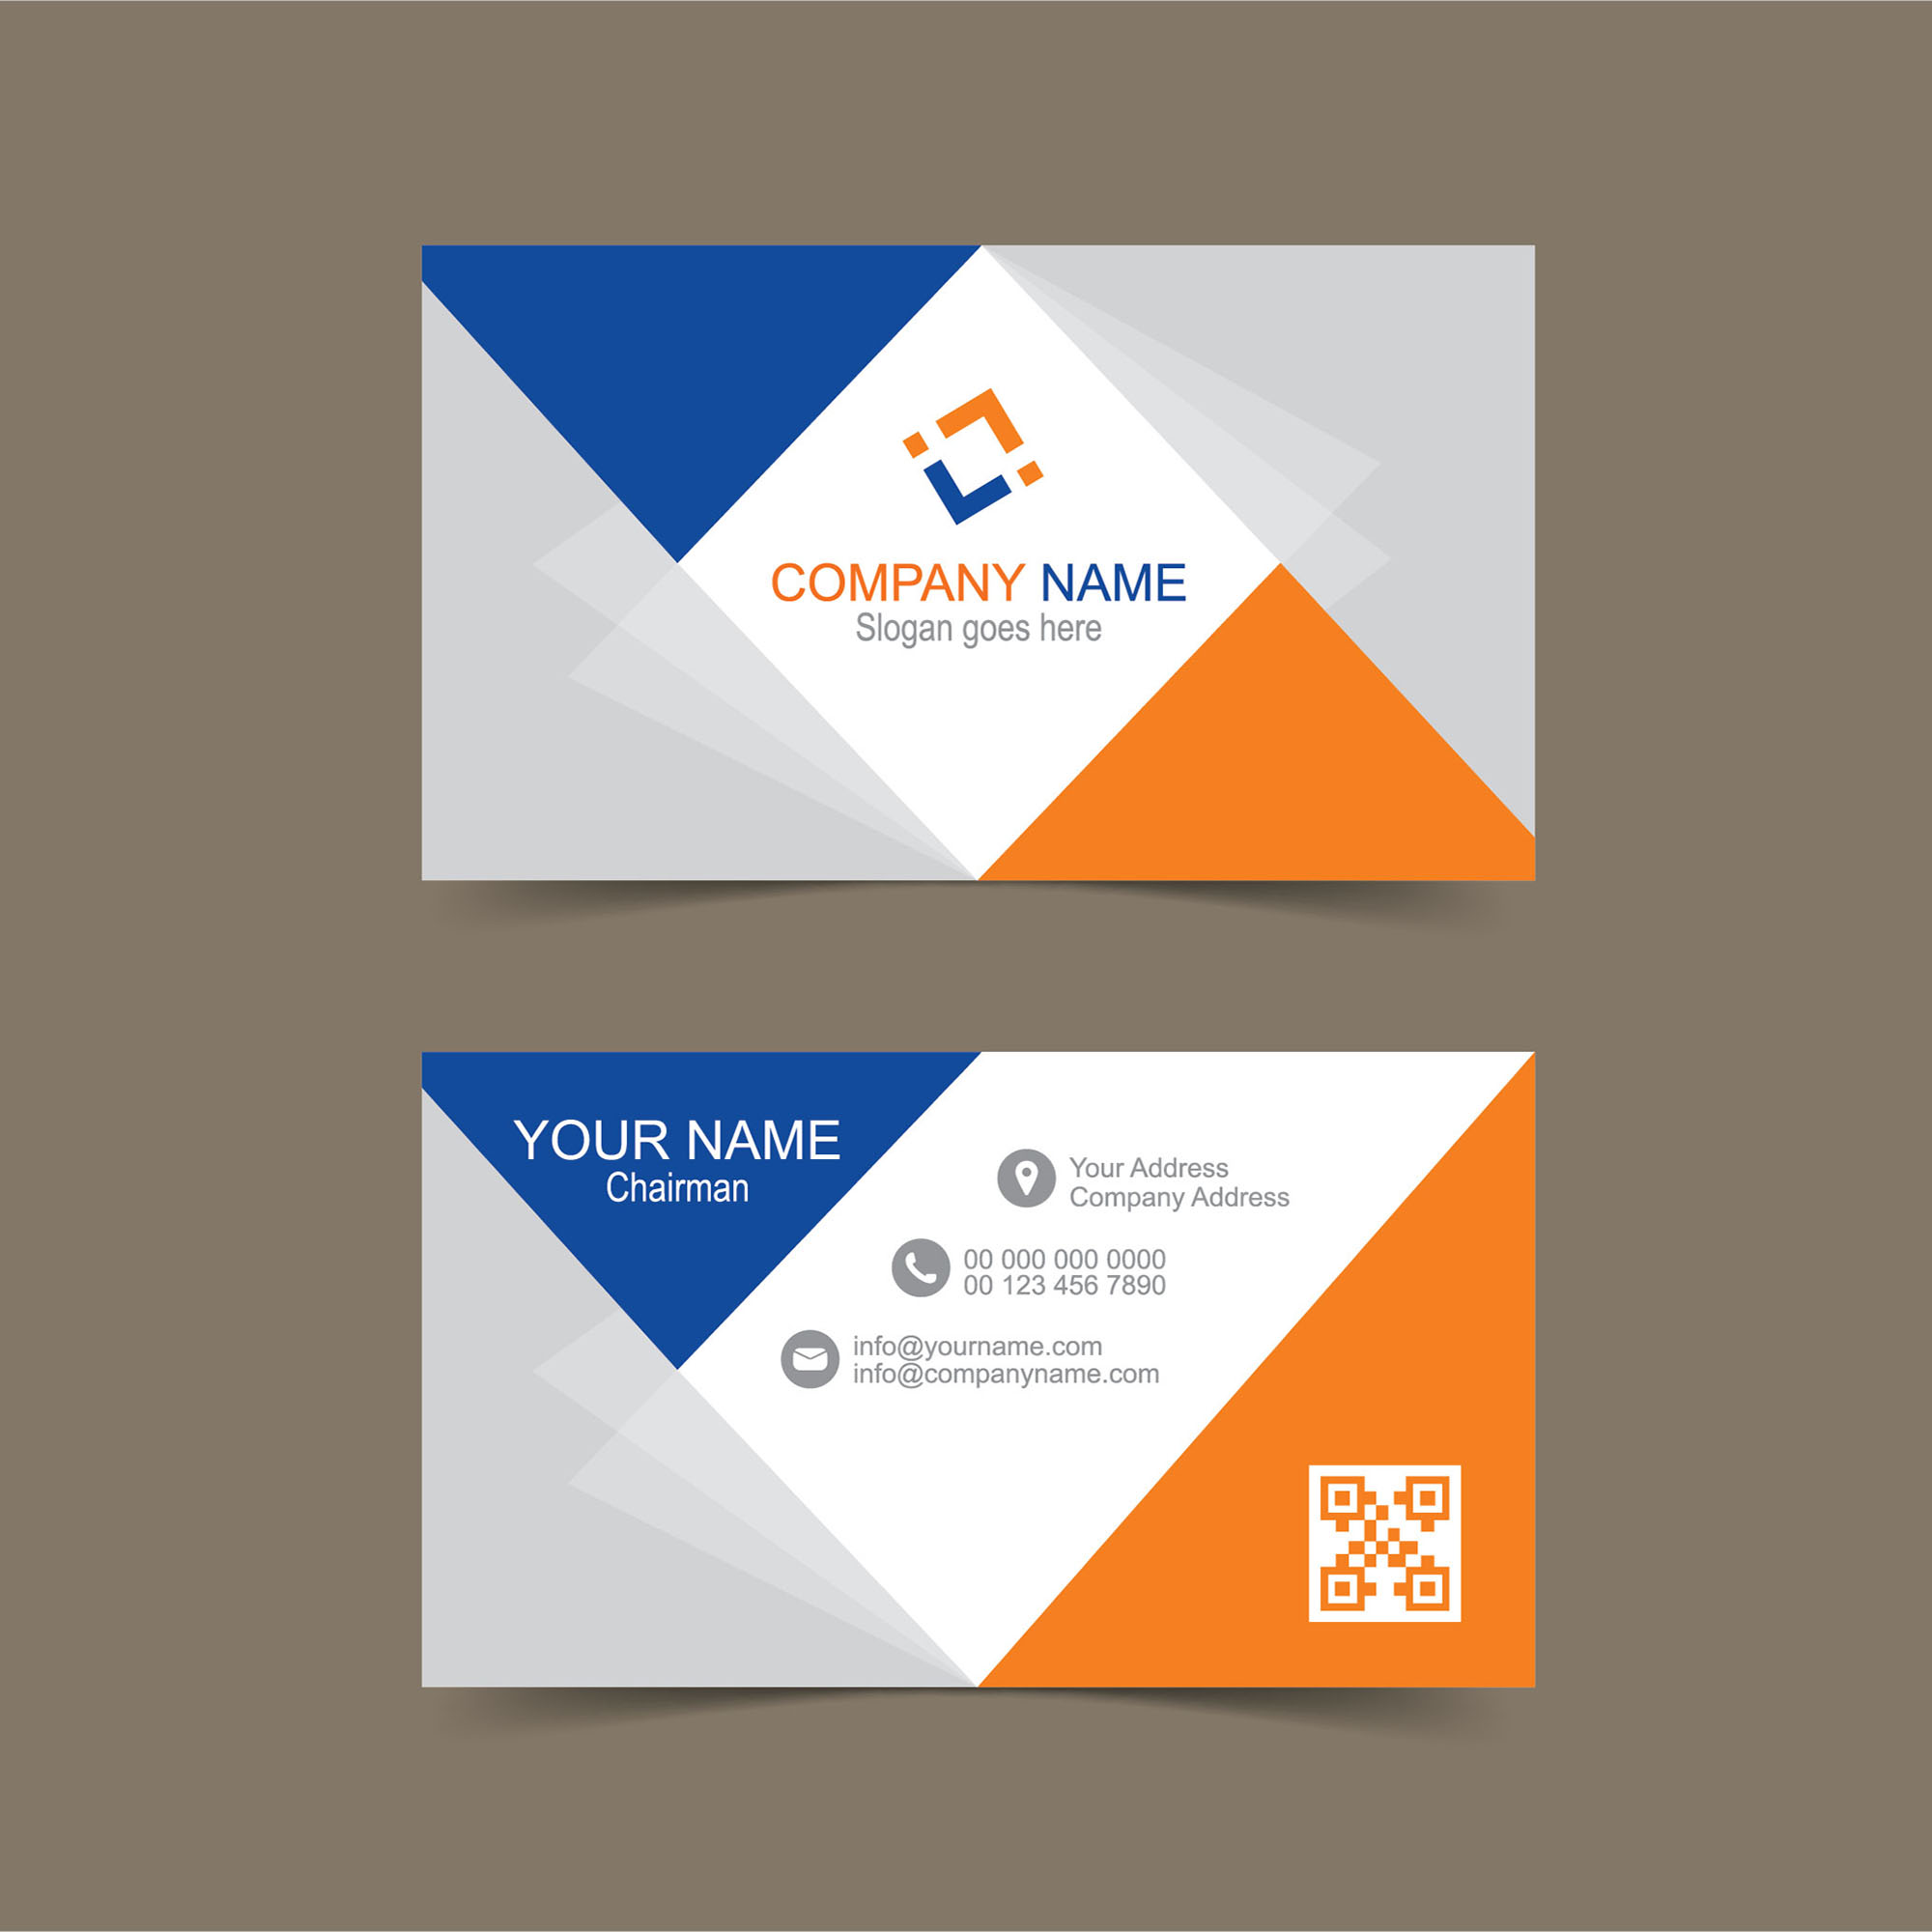 Free business card template for illustrator wisxi business card business cards business card design business card template design templates wajeb Choice Image